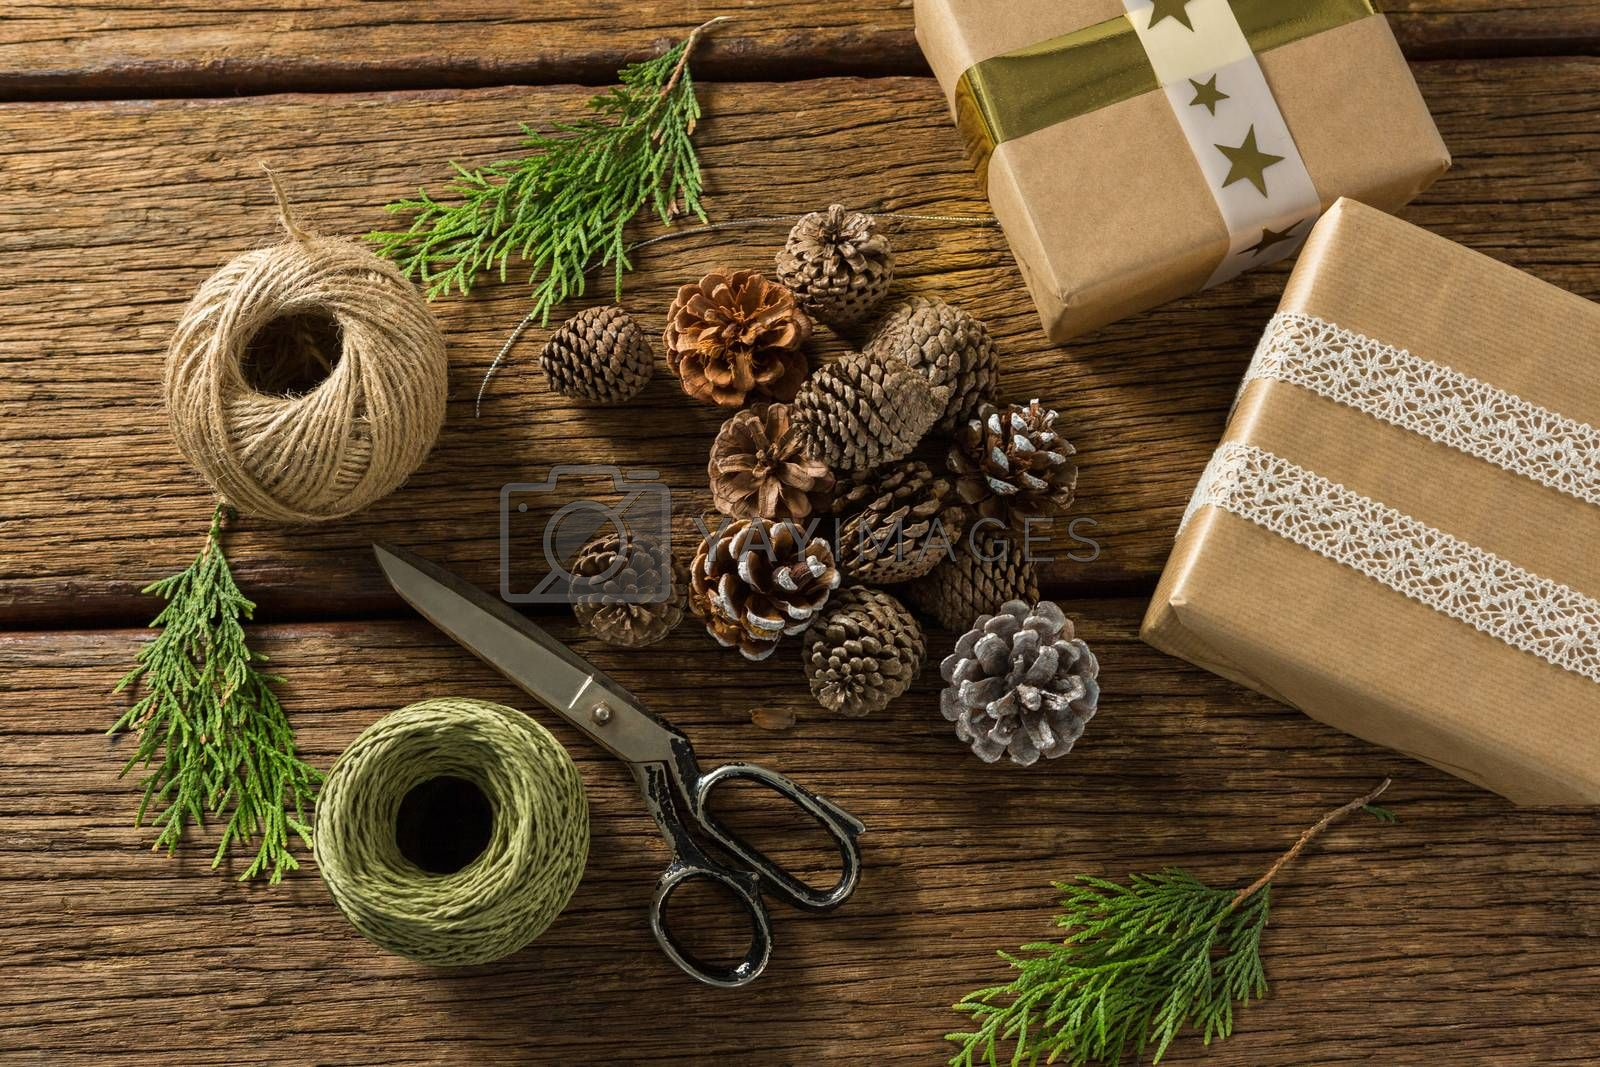 Overhead view of pine cones with gift boxes and thread spools by Wavebreakmedia